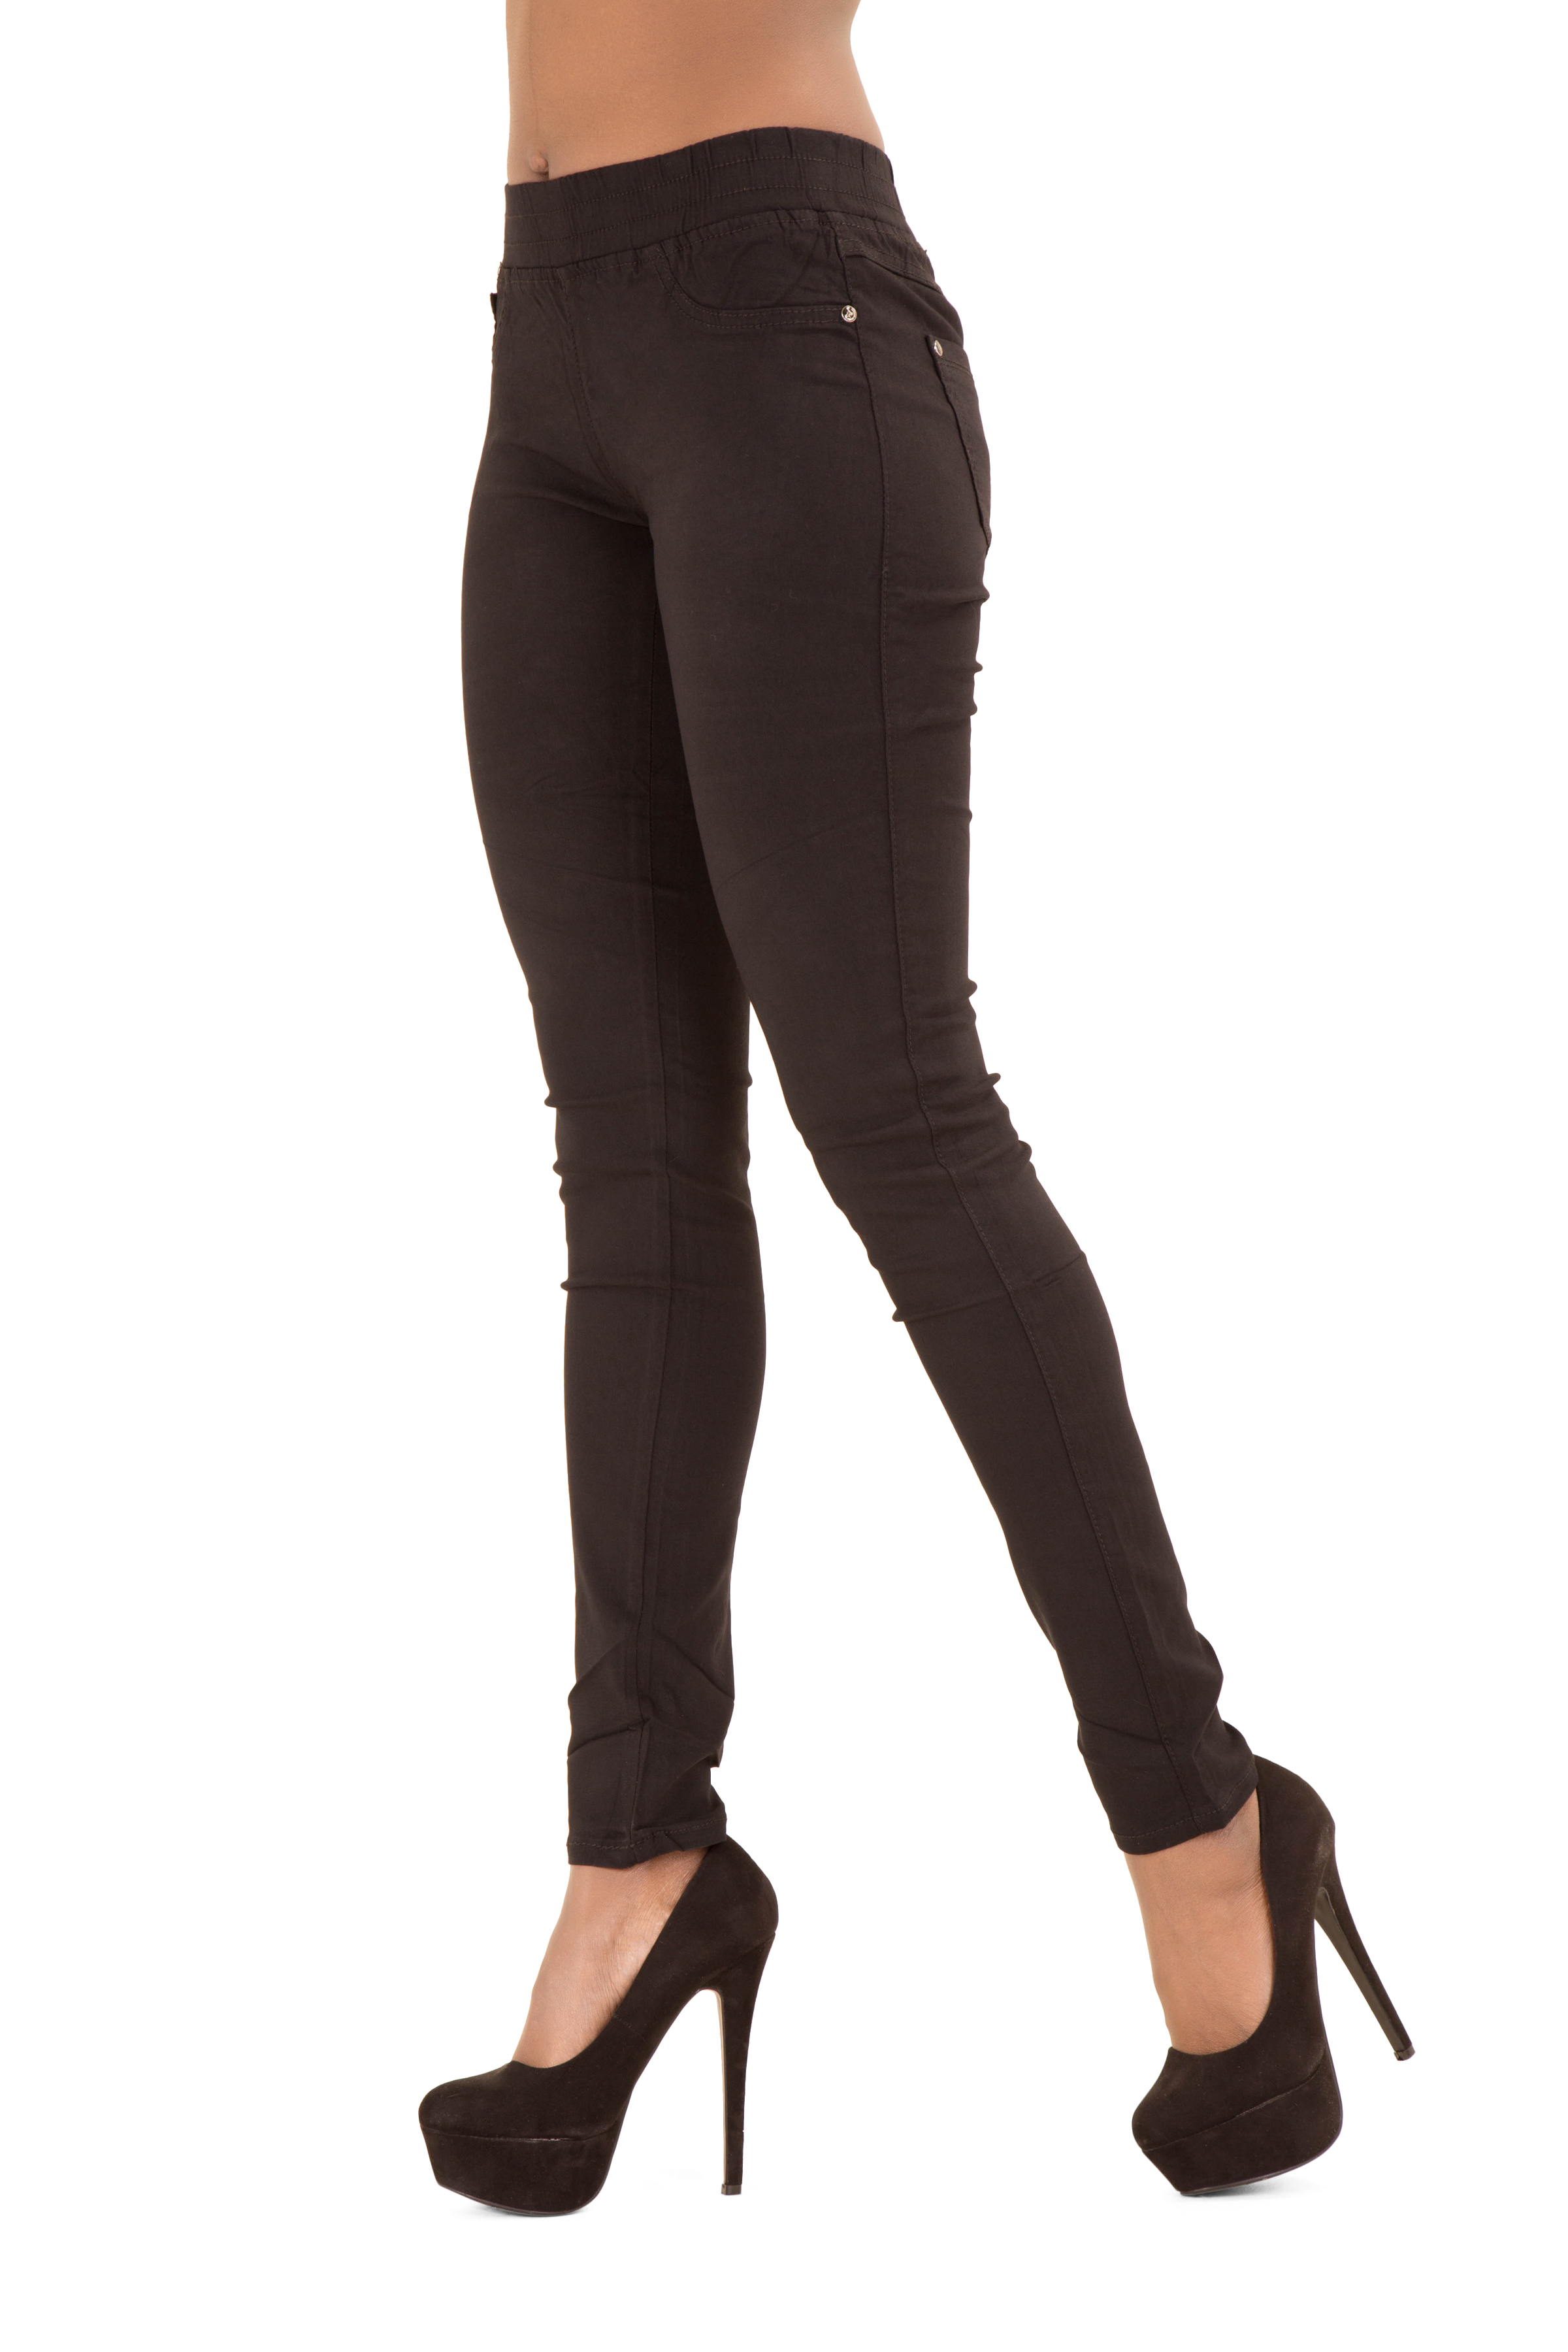 WOMENS LEGGINGS LADIES CASUAL STRETCH DENIM JEANS LOOK JEGGINGS PLUS SIZE £ Buy it now. Free P&P. DENIM BLACK & DENIM NAVY. SOFT AND STRETCH MATERIAL. POCKETS AT THE BACK. Wallis Black Denim Jeggings Size 12 Side zip and press stud fastening, no pockets Item is used. Will be sent by .